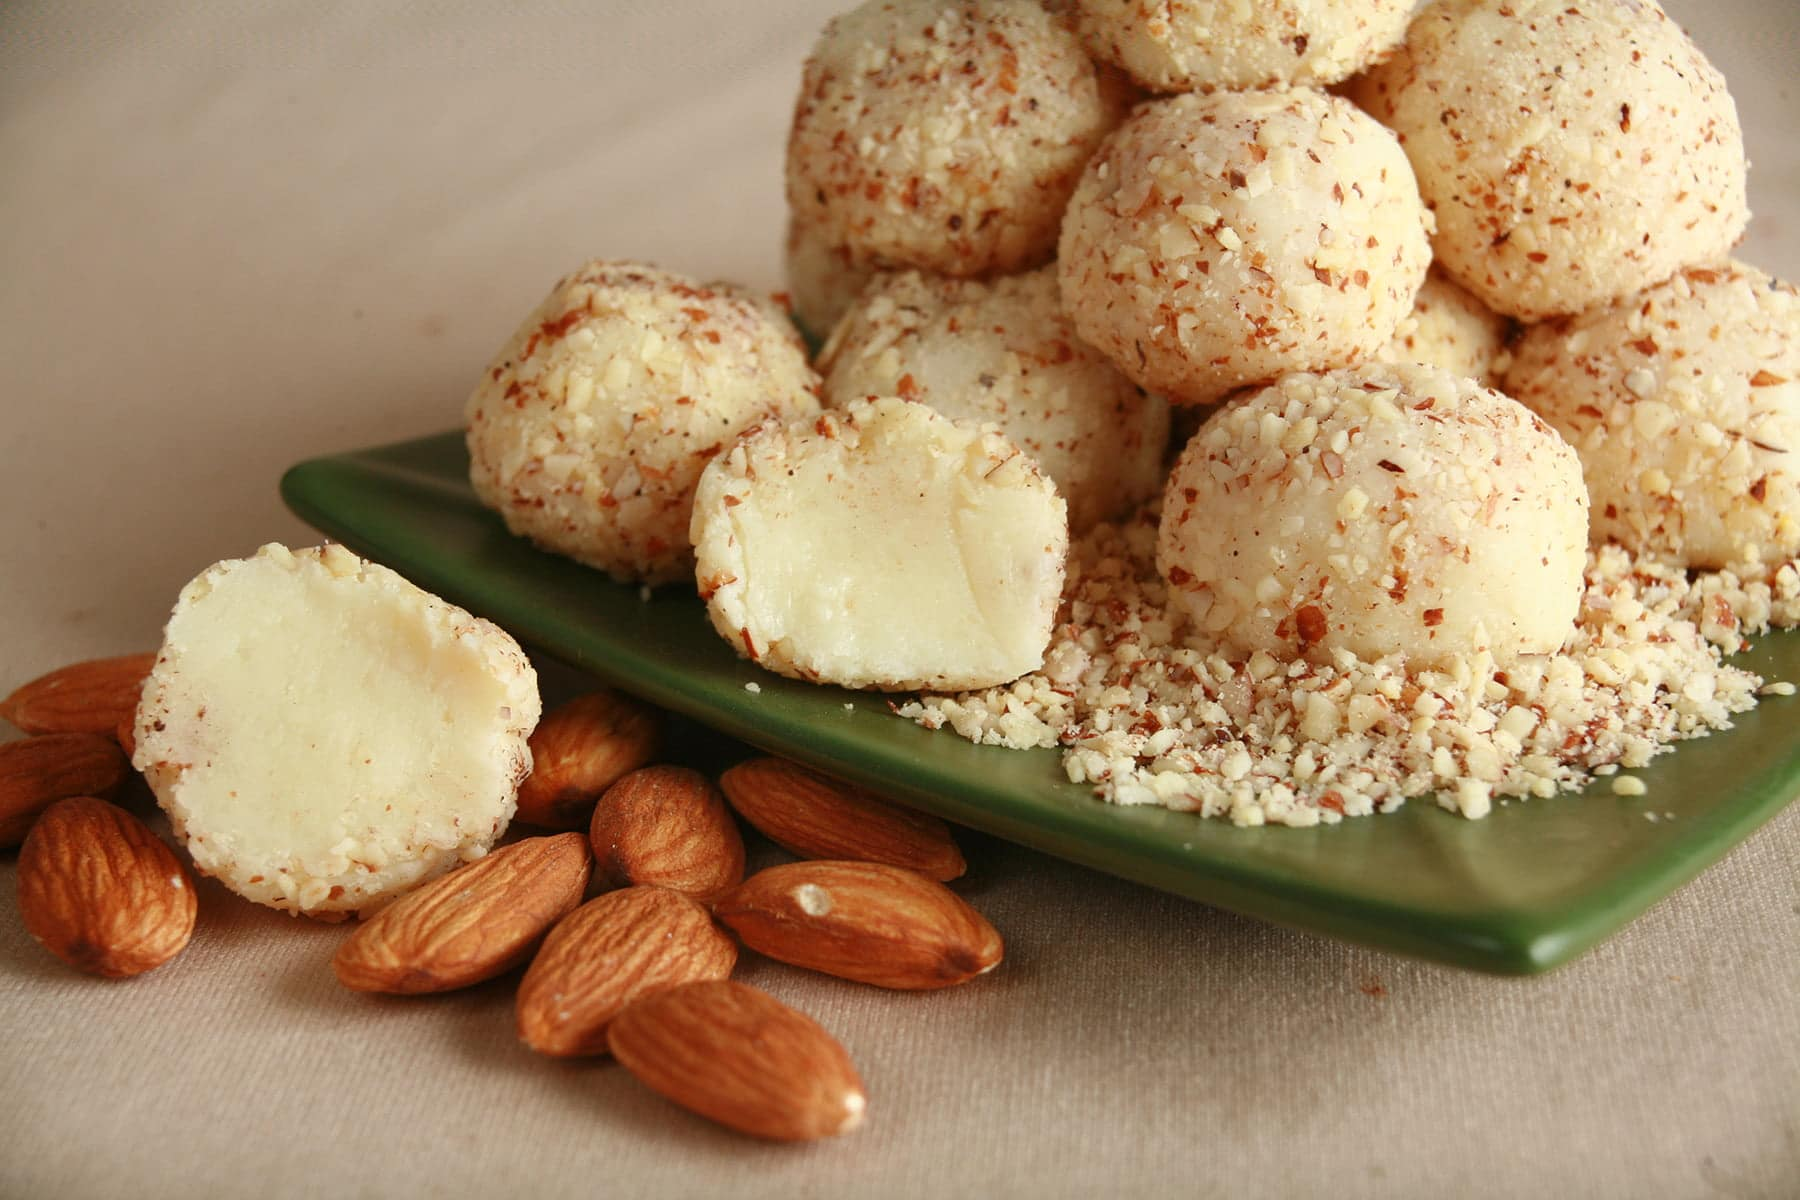 A close up view of a pile of white chocolate truffles, on a small green plate. The truffles are covered in finely chopped almonds, and there are a few whole almonds in the foreground.